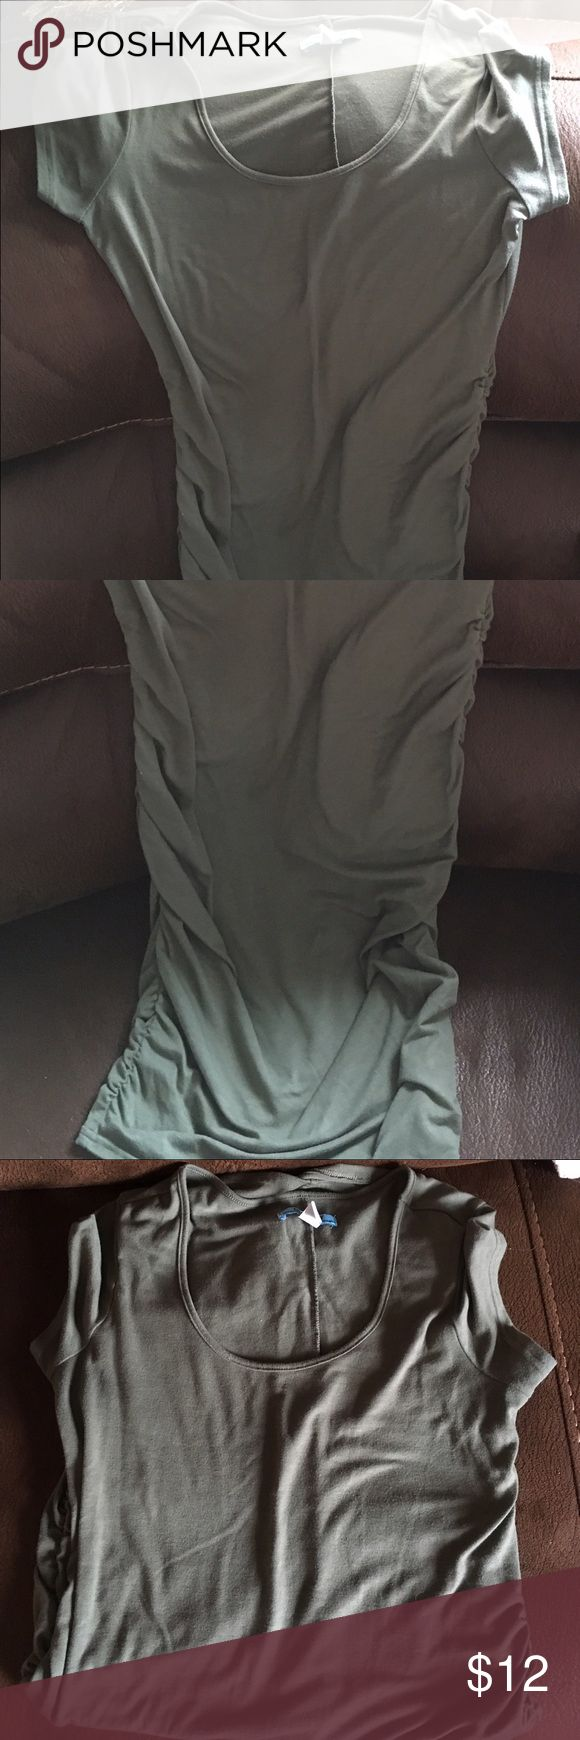 Old Navy Maternity dress Excellent Condition. I loved this dress - it's super comfortable and it also looks SO cute/sexy. 😉 (I can show pic of me wearing it while pregnant if you need just let me know) and this would also fit someone that's a Small like me. It stretches nice. Old Navy Dresses Midi